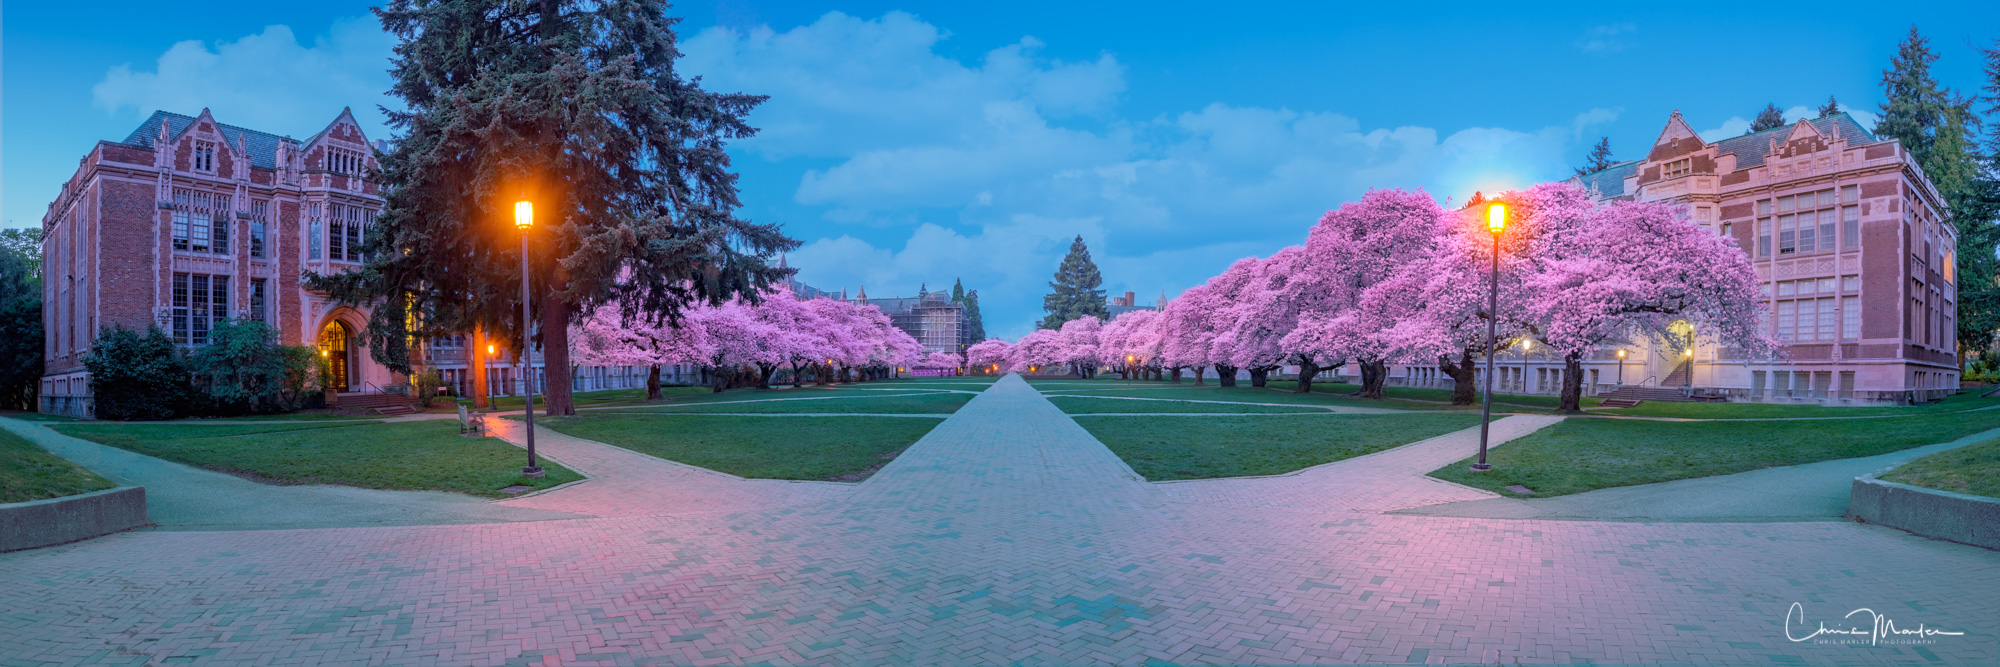 Spring Fever, University of Washington Cherry Trees, Cherry Blossoms, photo